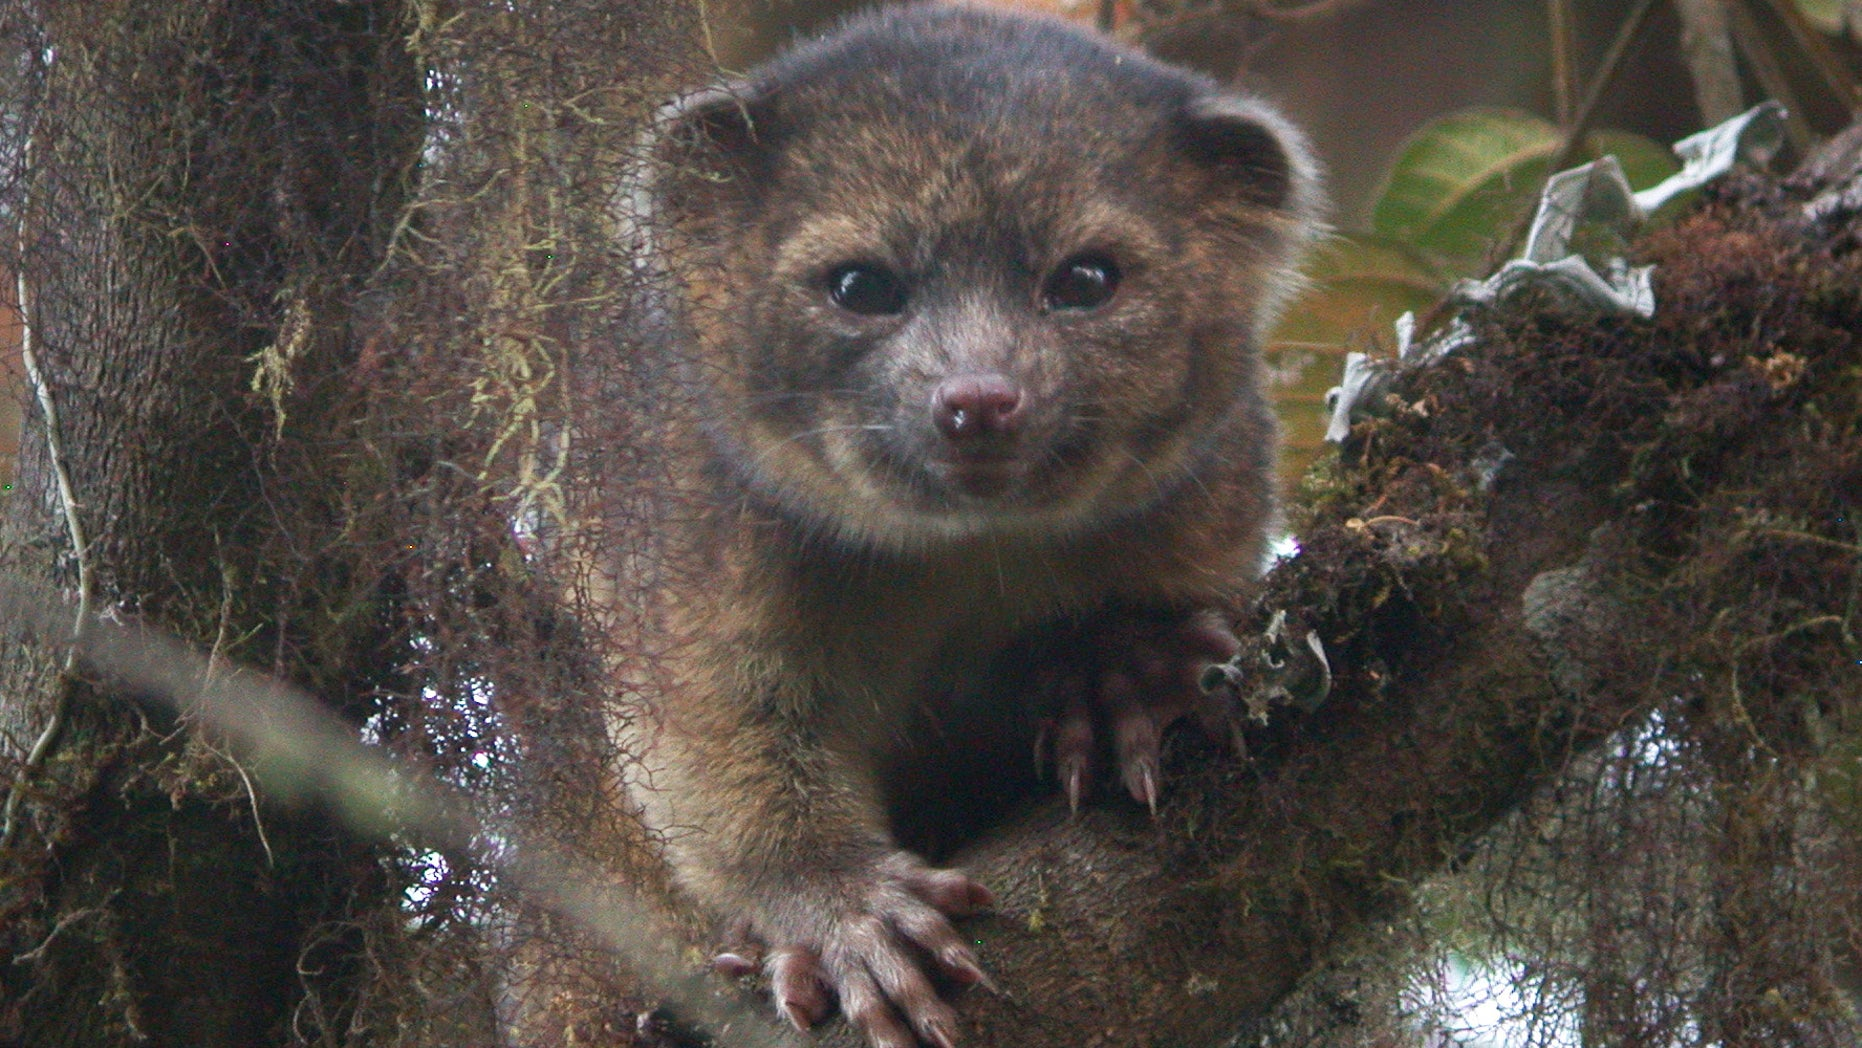 This undated handout photo provided by Mark Gurney shows a olinguito. Imagine a raccoon with a teddy bear face that is so cute it's hard to resist, let alone overlook. But somehow science did _ until now. Researchers Thursday announced a rare discovery of a new species of a mammal that belongs to the grouping of large creatures that include dogs, cats and bears: the olinguito. The raccoon-sized critters leap through the trees of the cloud forests of Ecuador and Colombia at night, according to a Smithsonian researcher who has spent the past decade tracking them. (AP Photo/Mark Gurney)